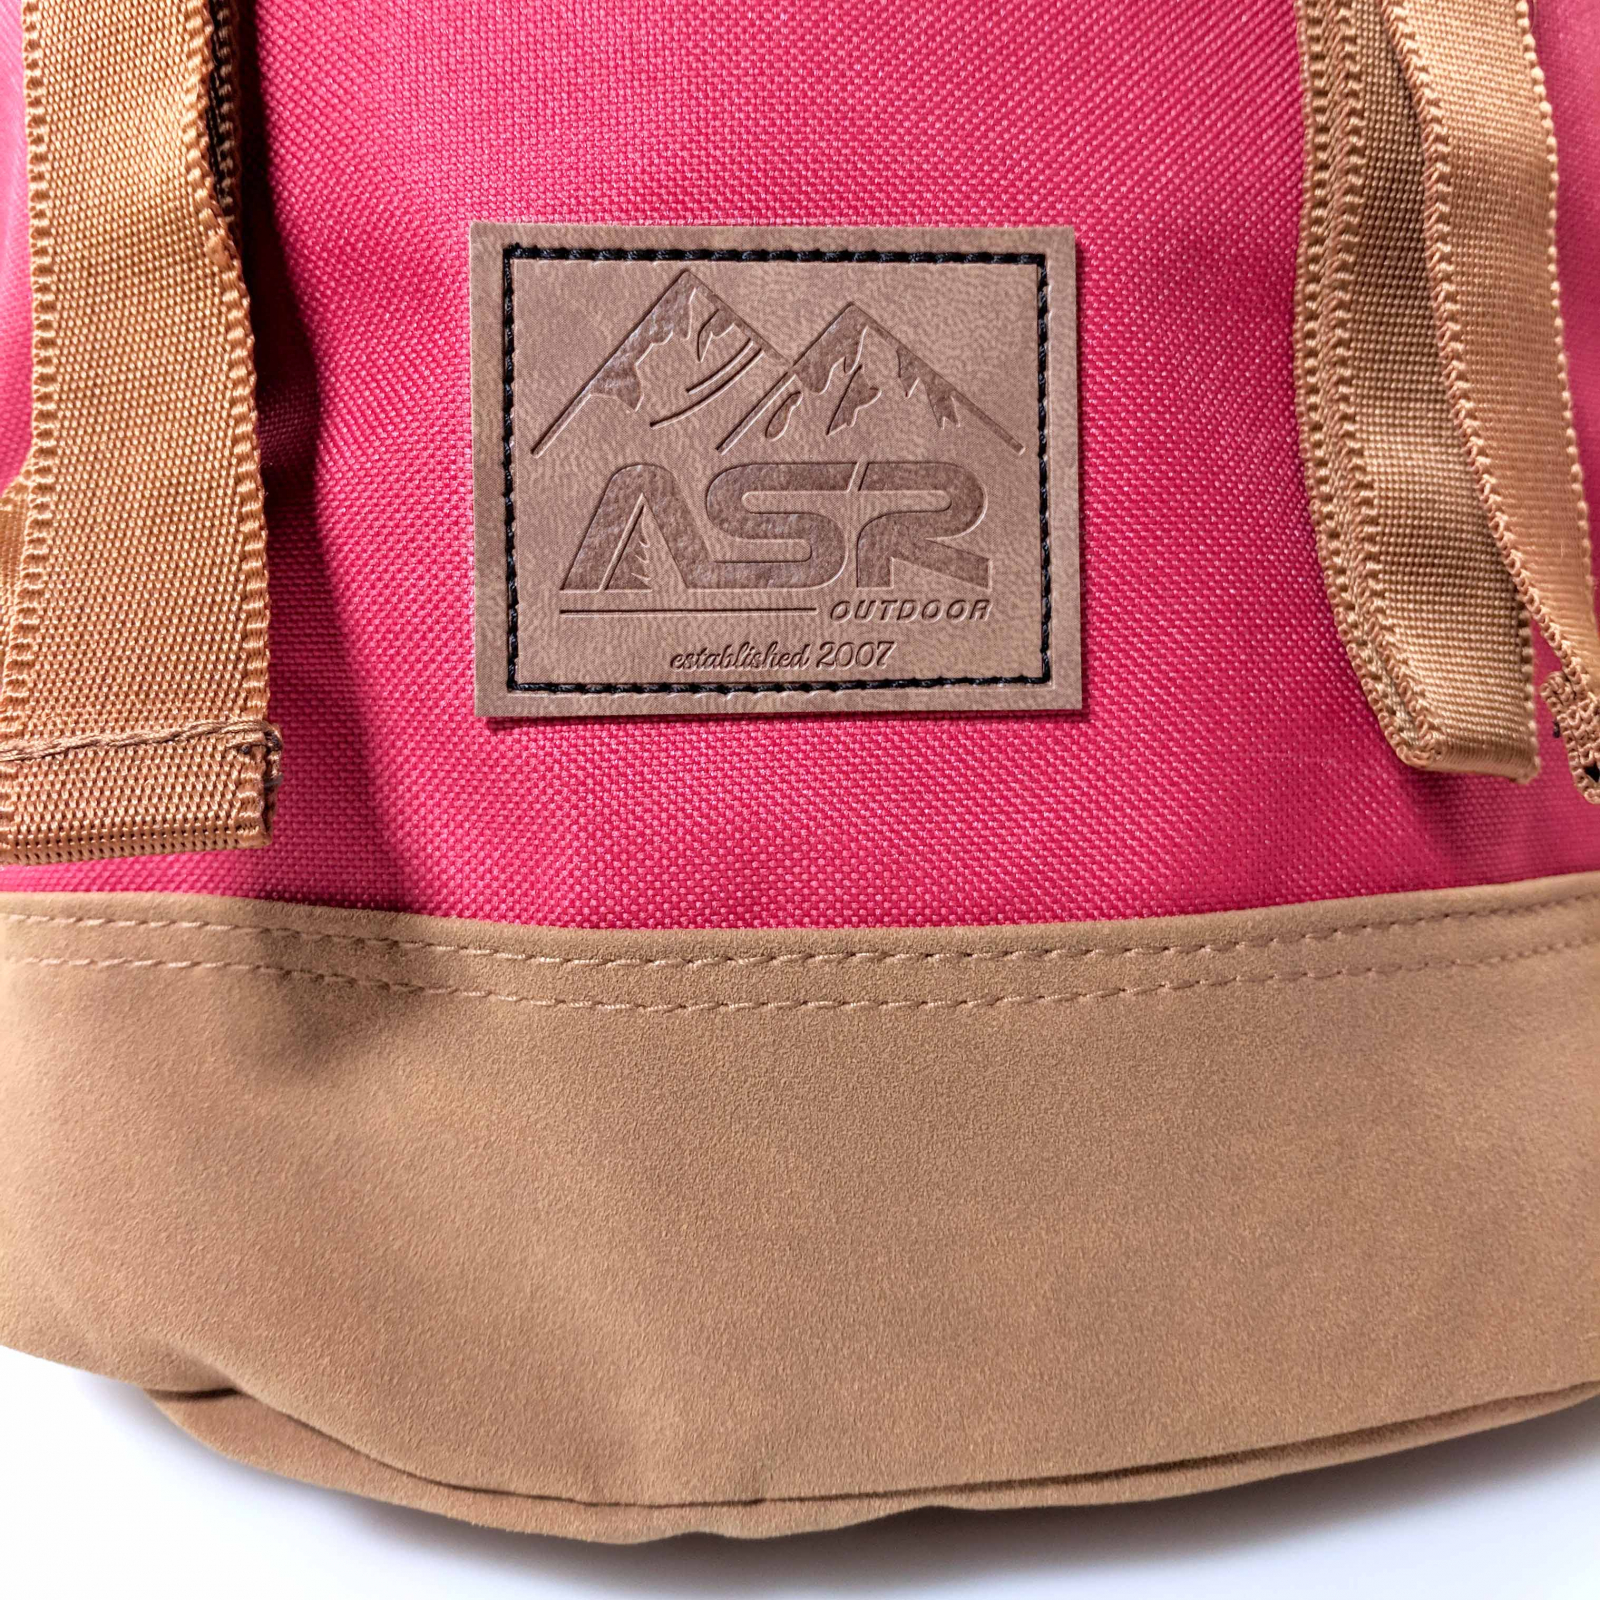 ASR Outdoor Journey Backpack Adjustable Straps Durable Polyester Red and Brown